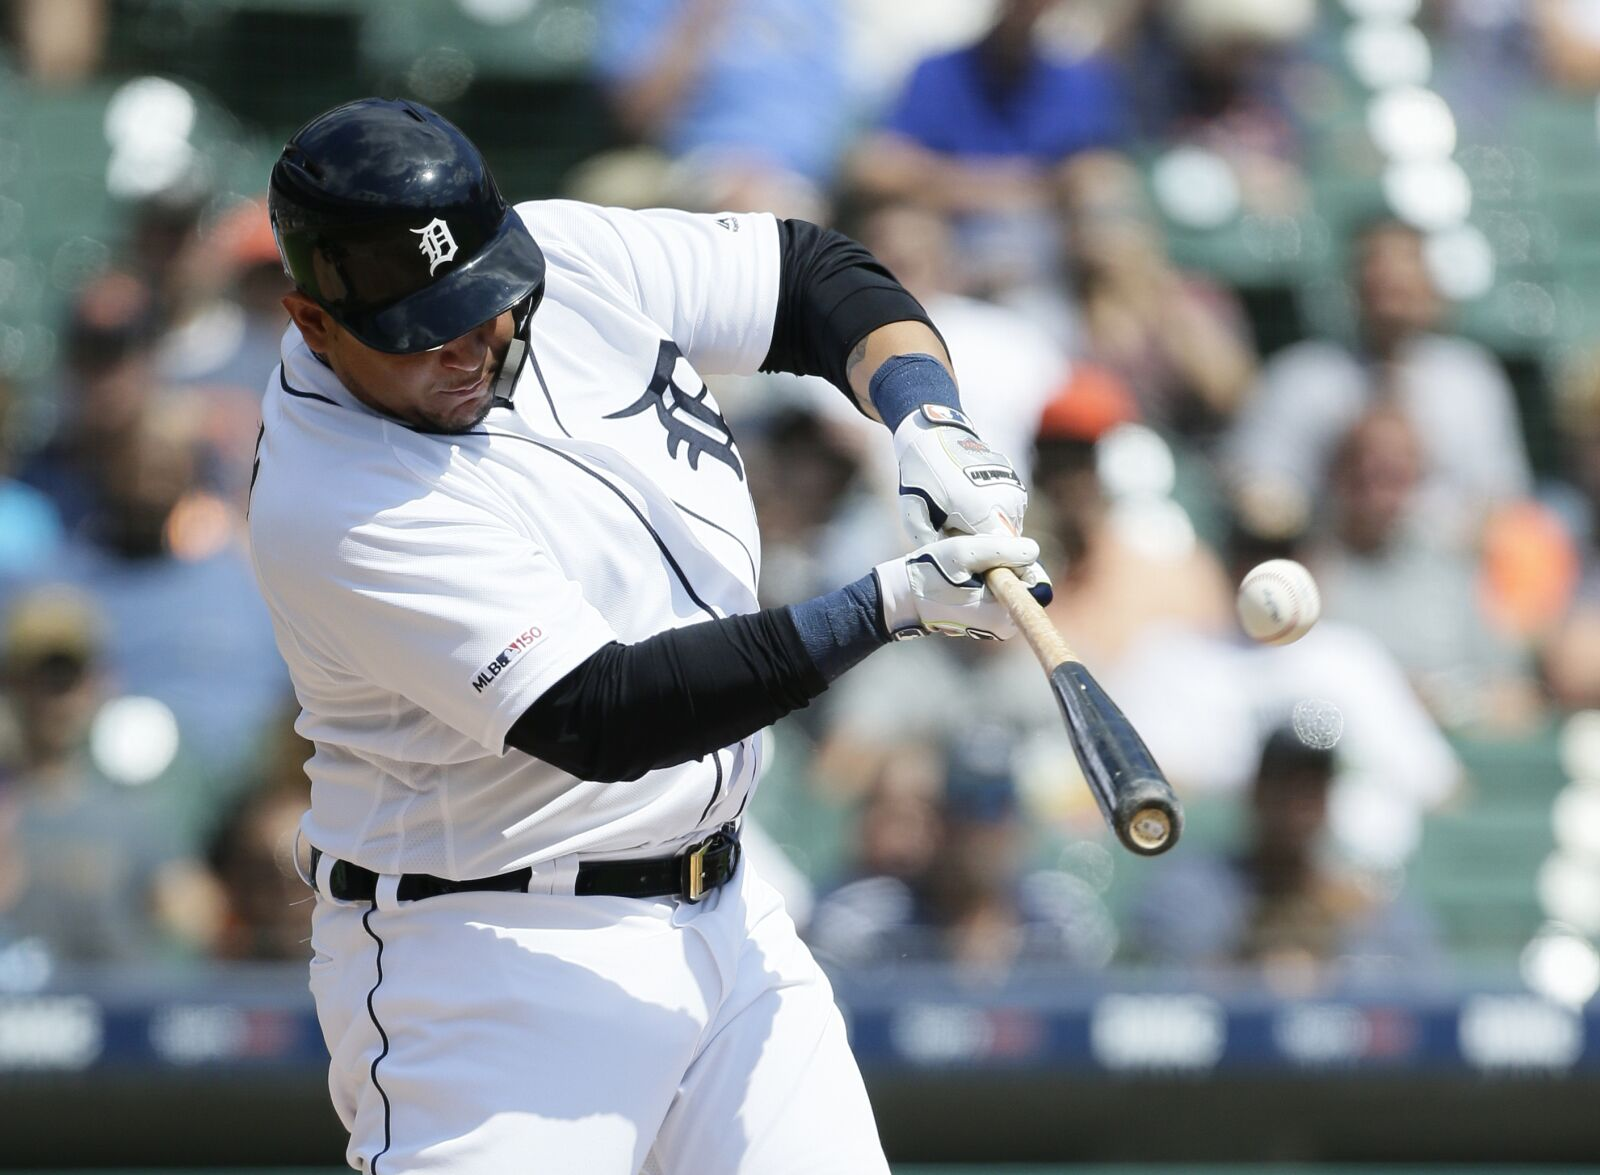 Detroit Tigers: Twins take final game with clutch hit by Kepler